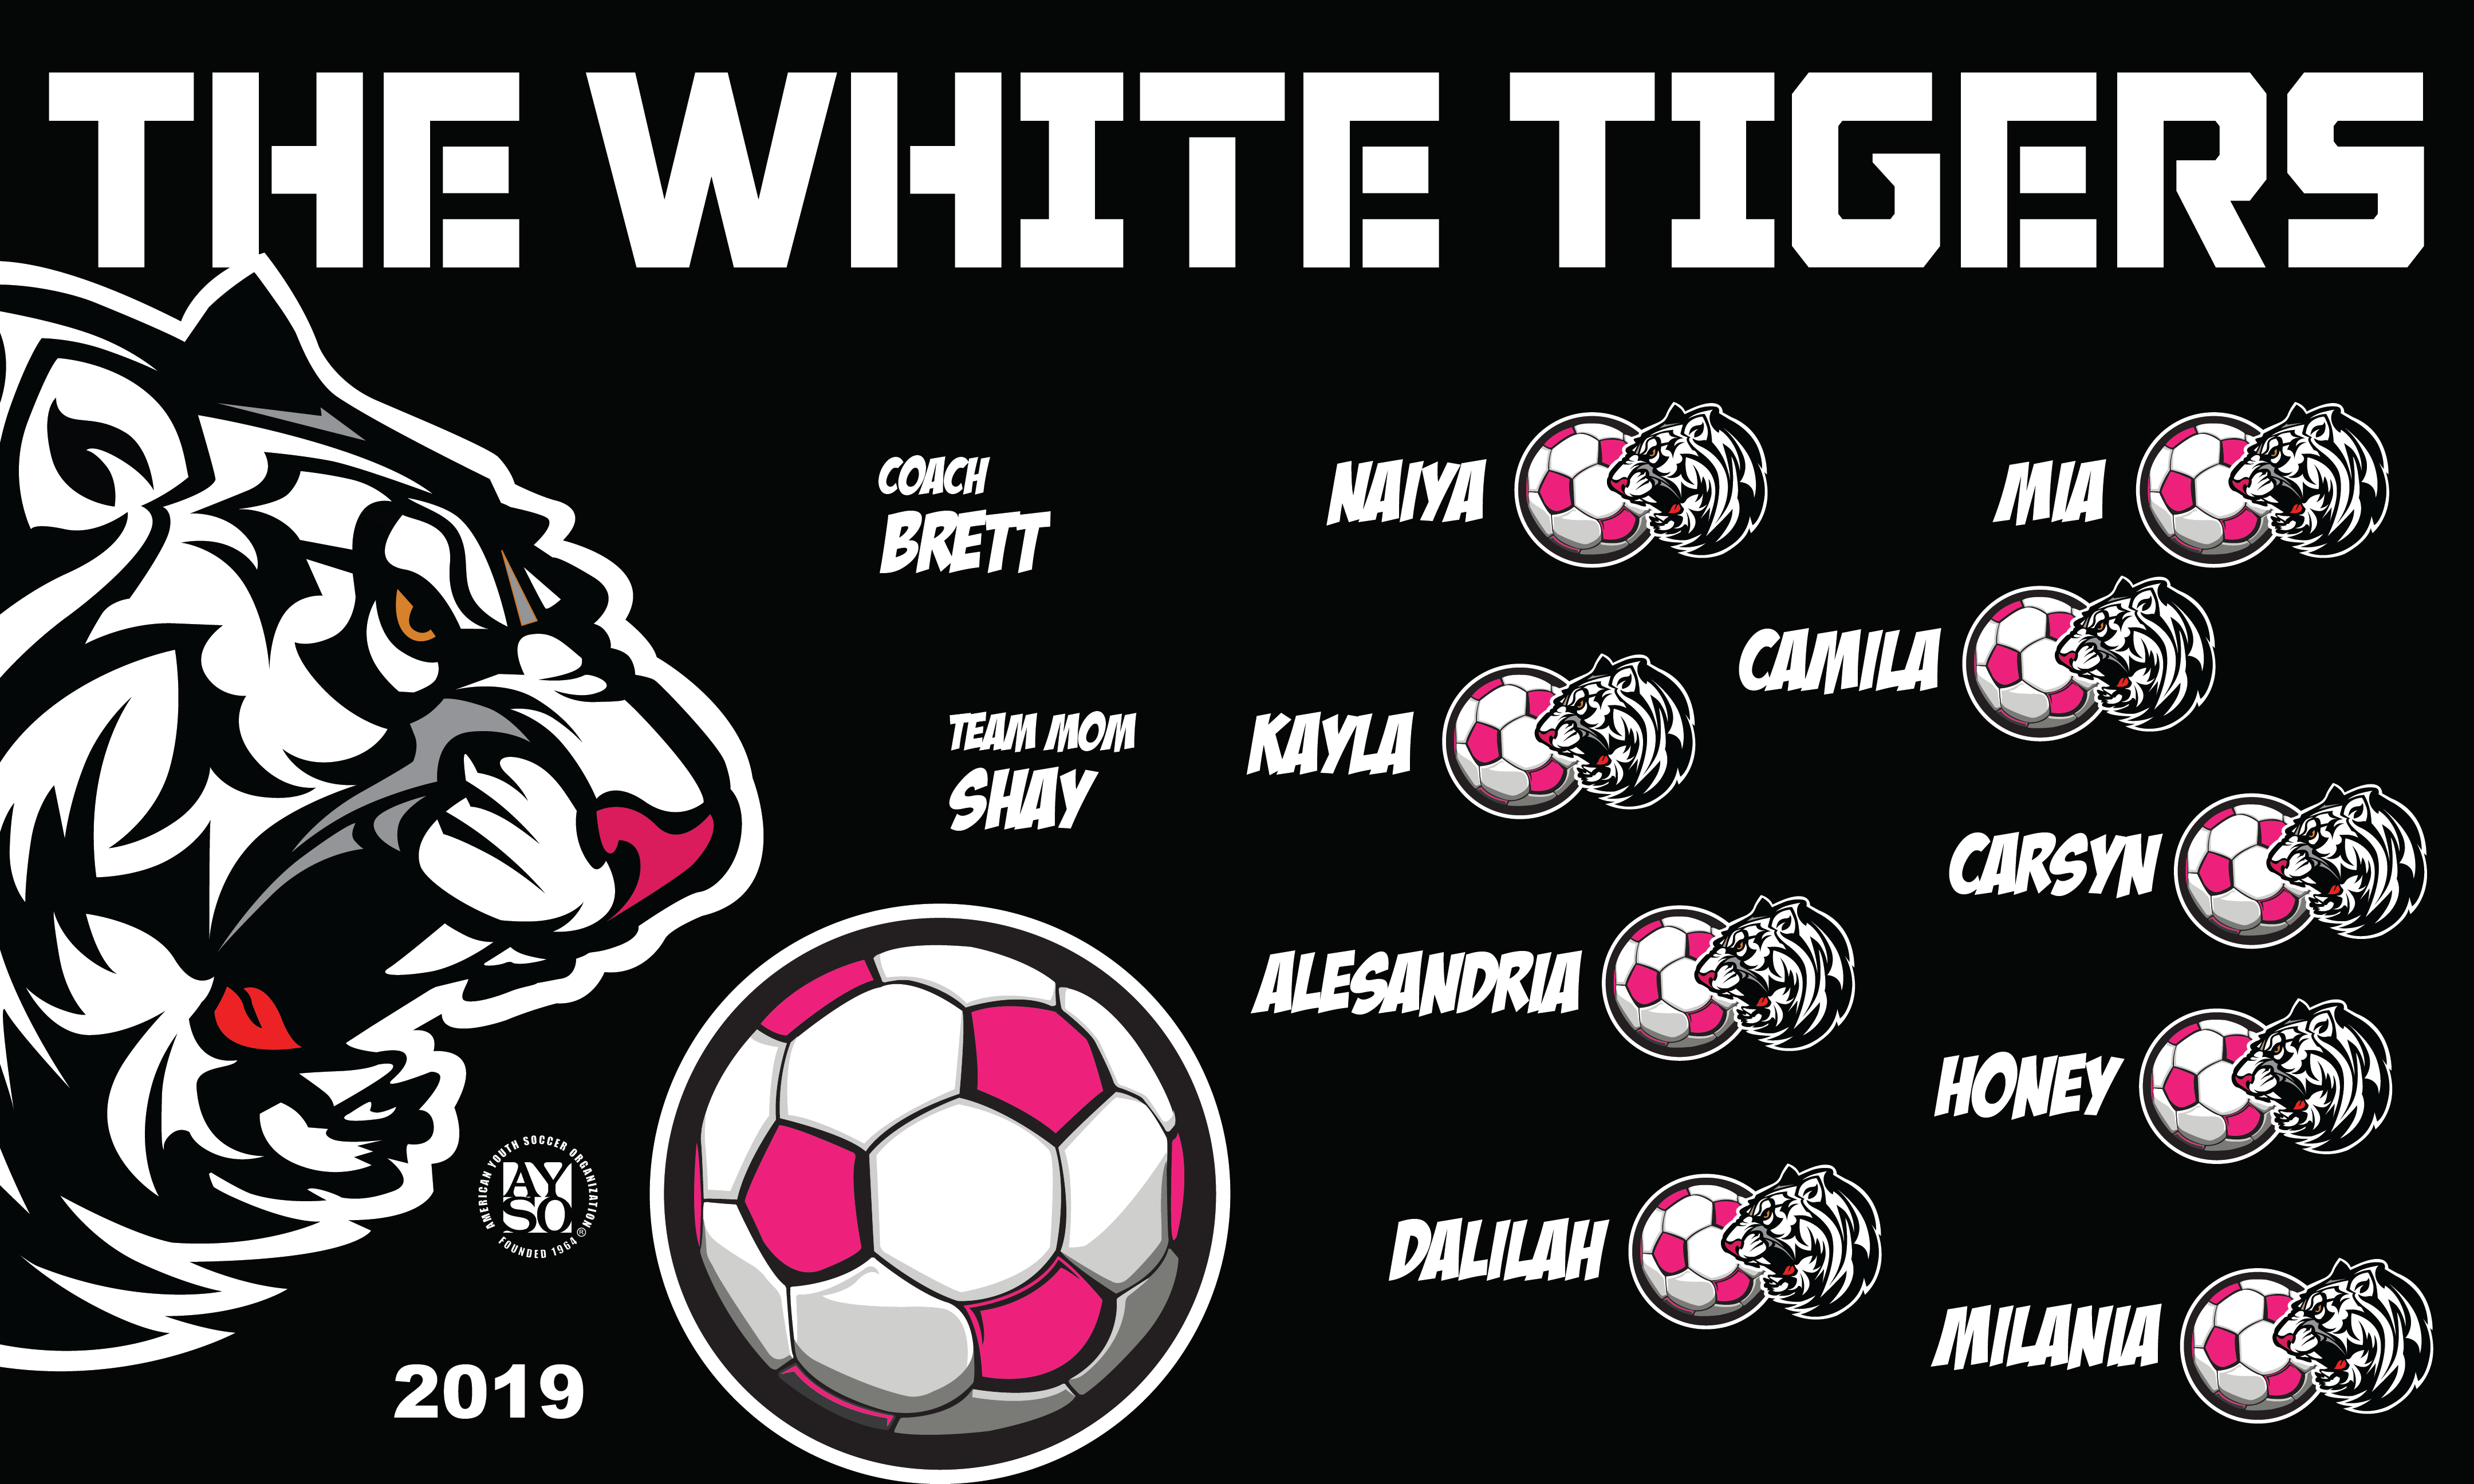 B2589 White Tigers 3x5 Banner